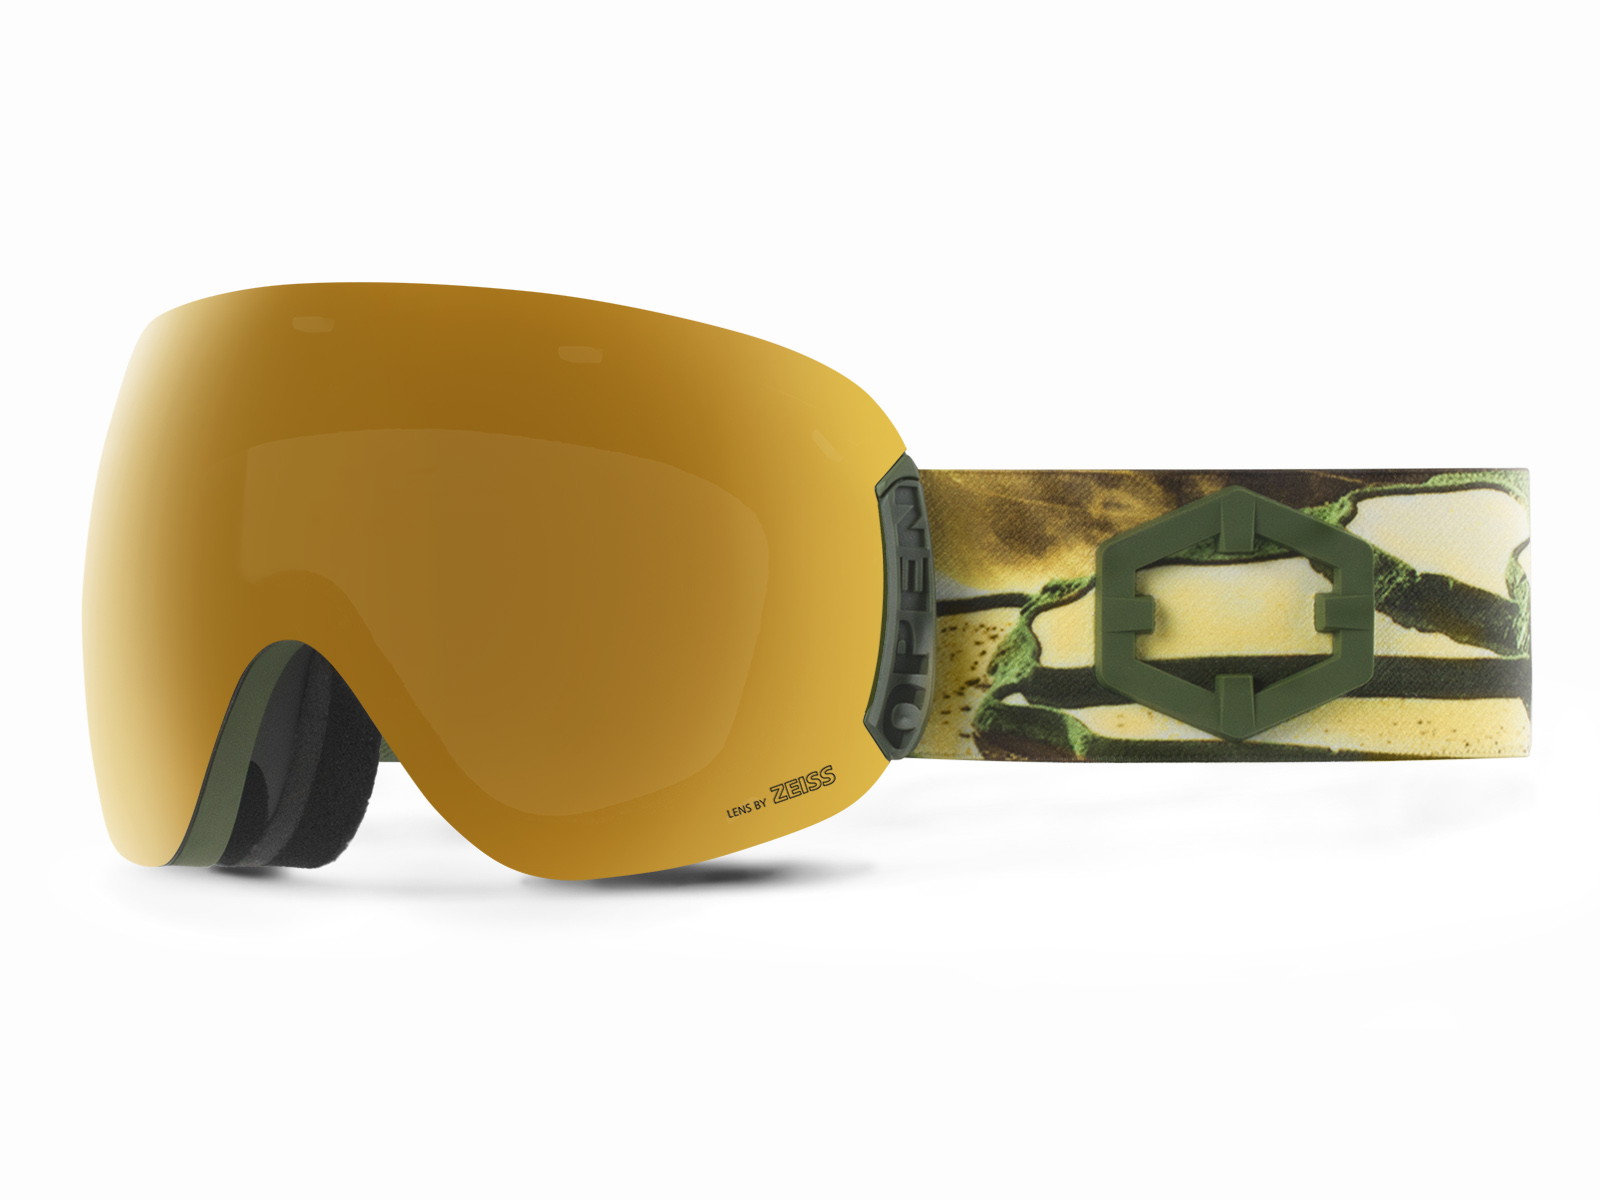 OPEN EASTERN GOLD GOLD24 MCI GOGGLE